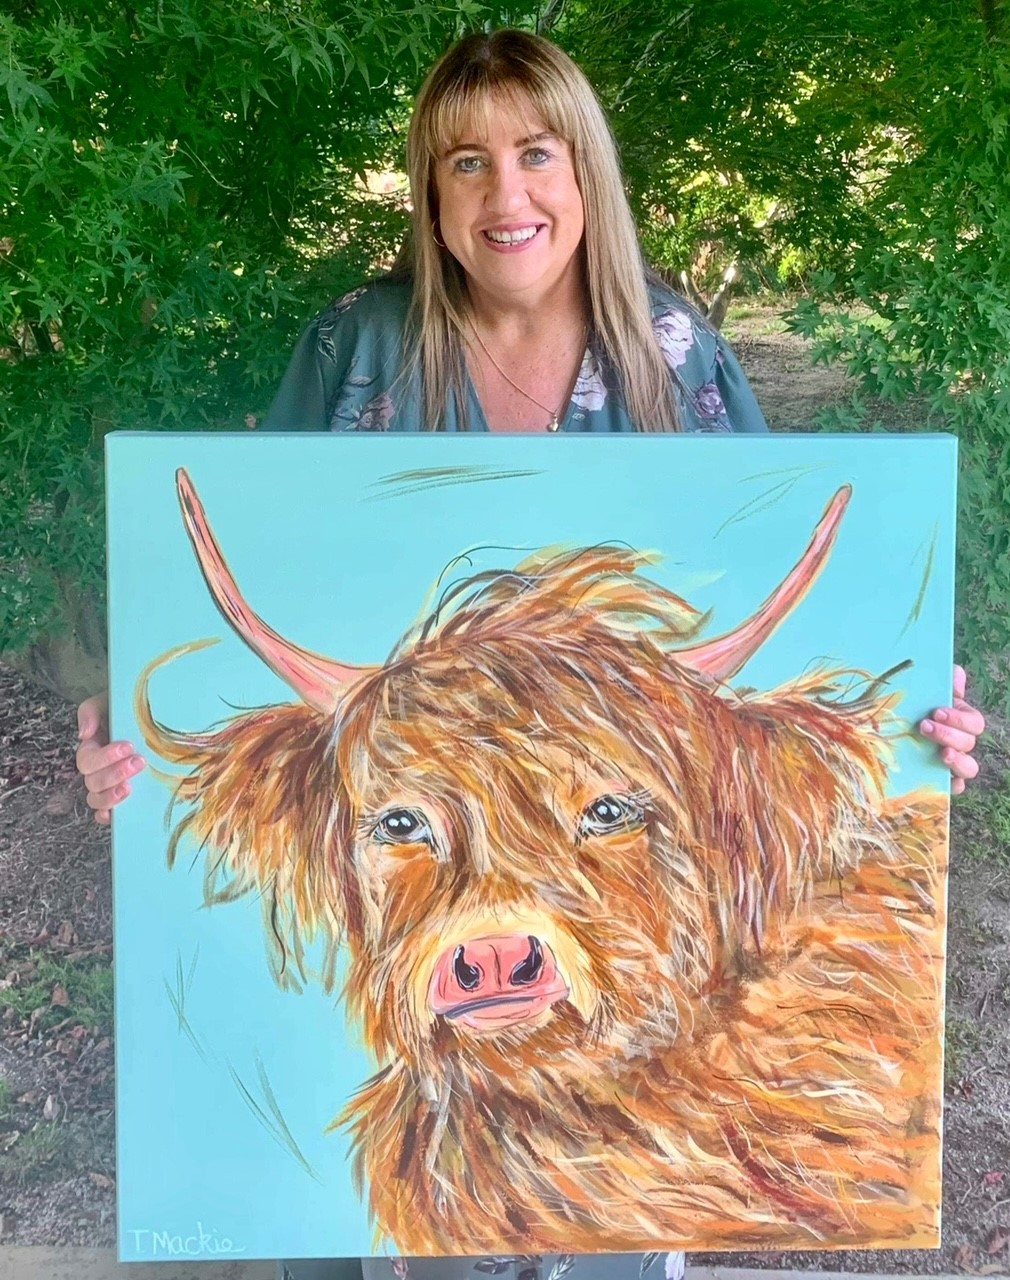 Picture of Tracey Mackie holding painting of Cow titled Catriona